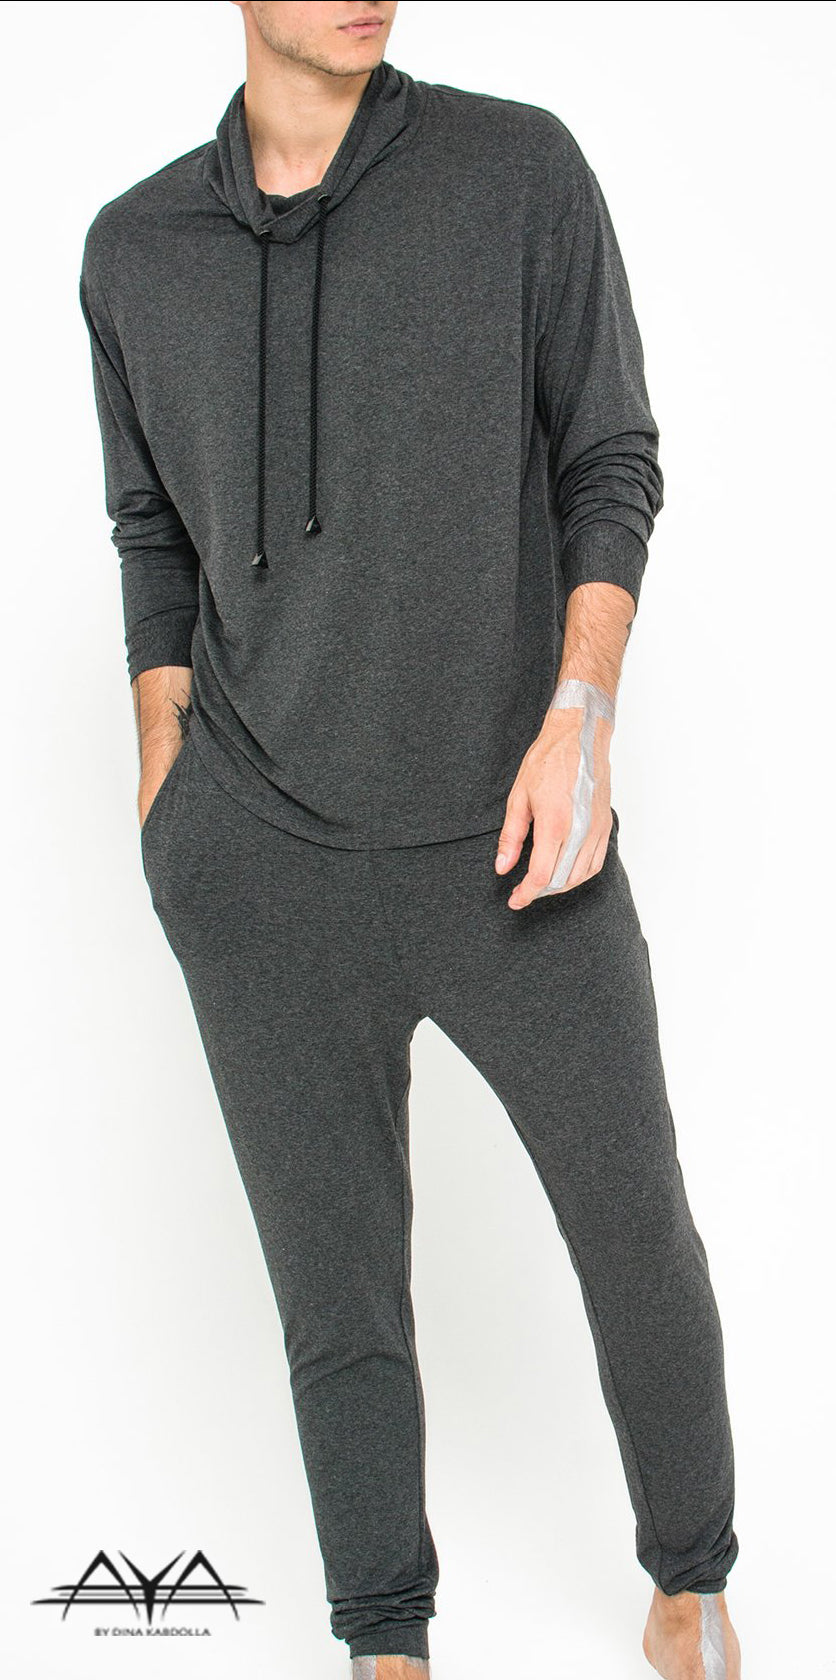 UNISEX LONG NECK BASIC SET